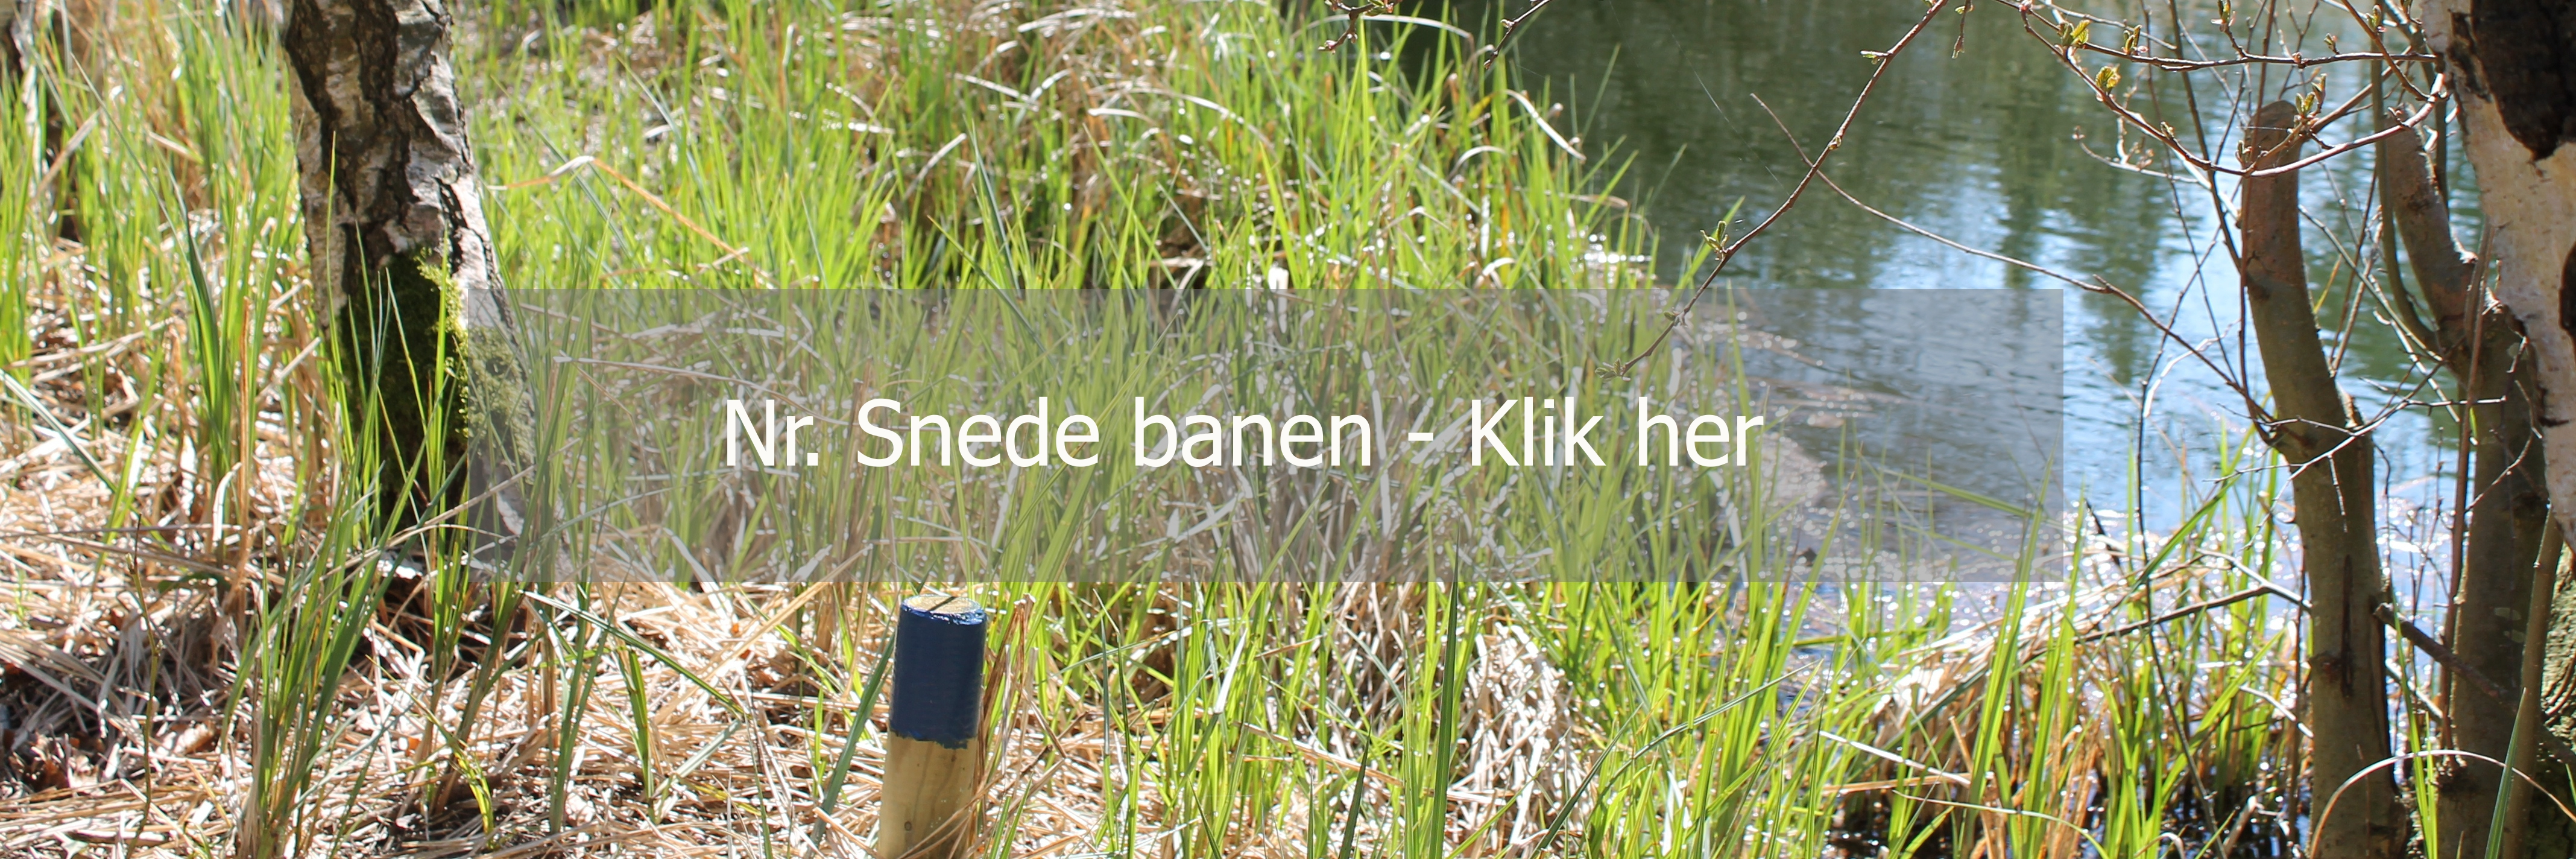 3Dbaner_hjemmeside_under_sitepic